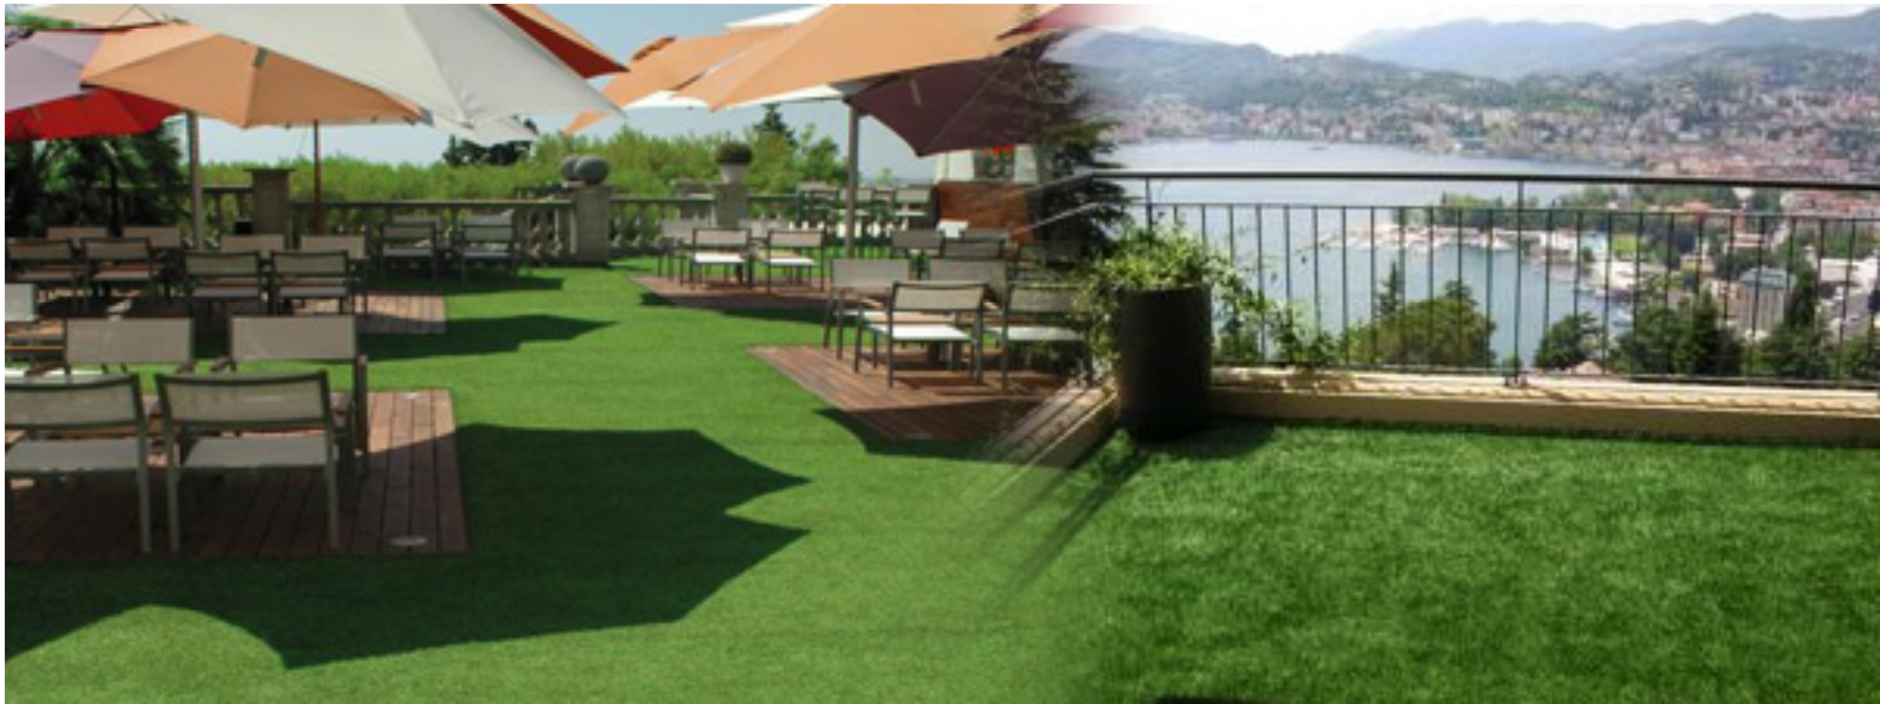 artificial grass balcony Give Your Lake Home Maintenance Free Artificial Grass